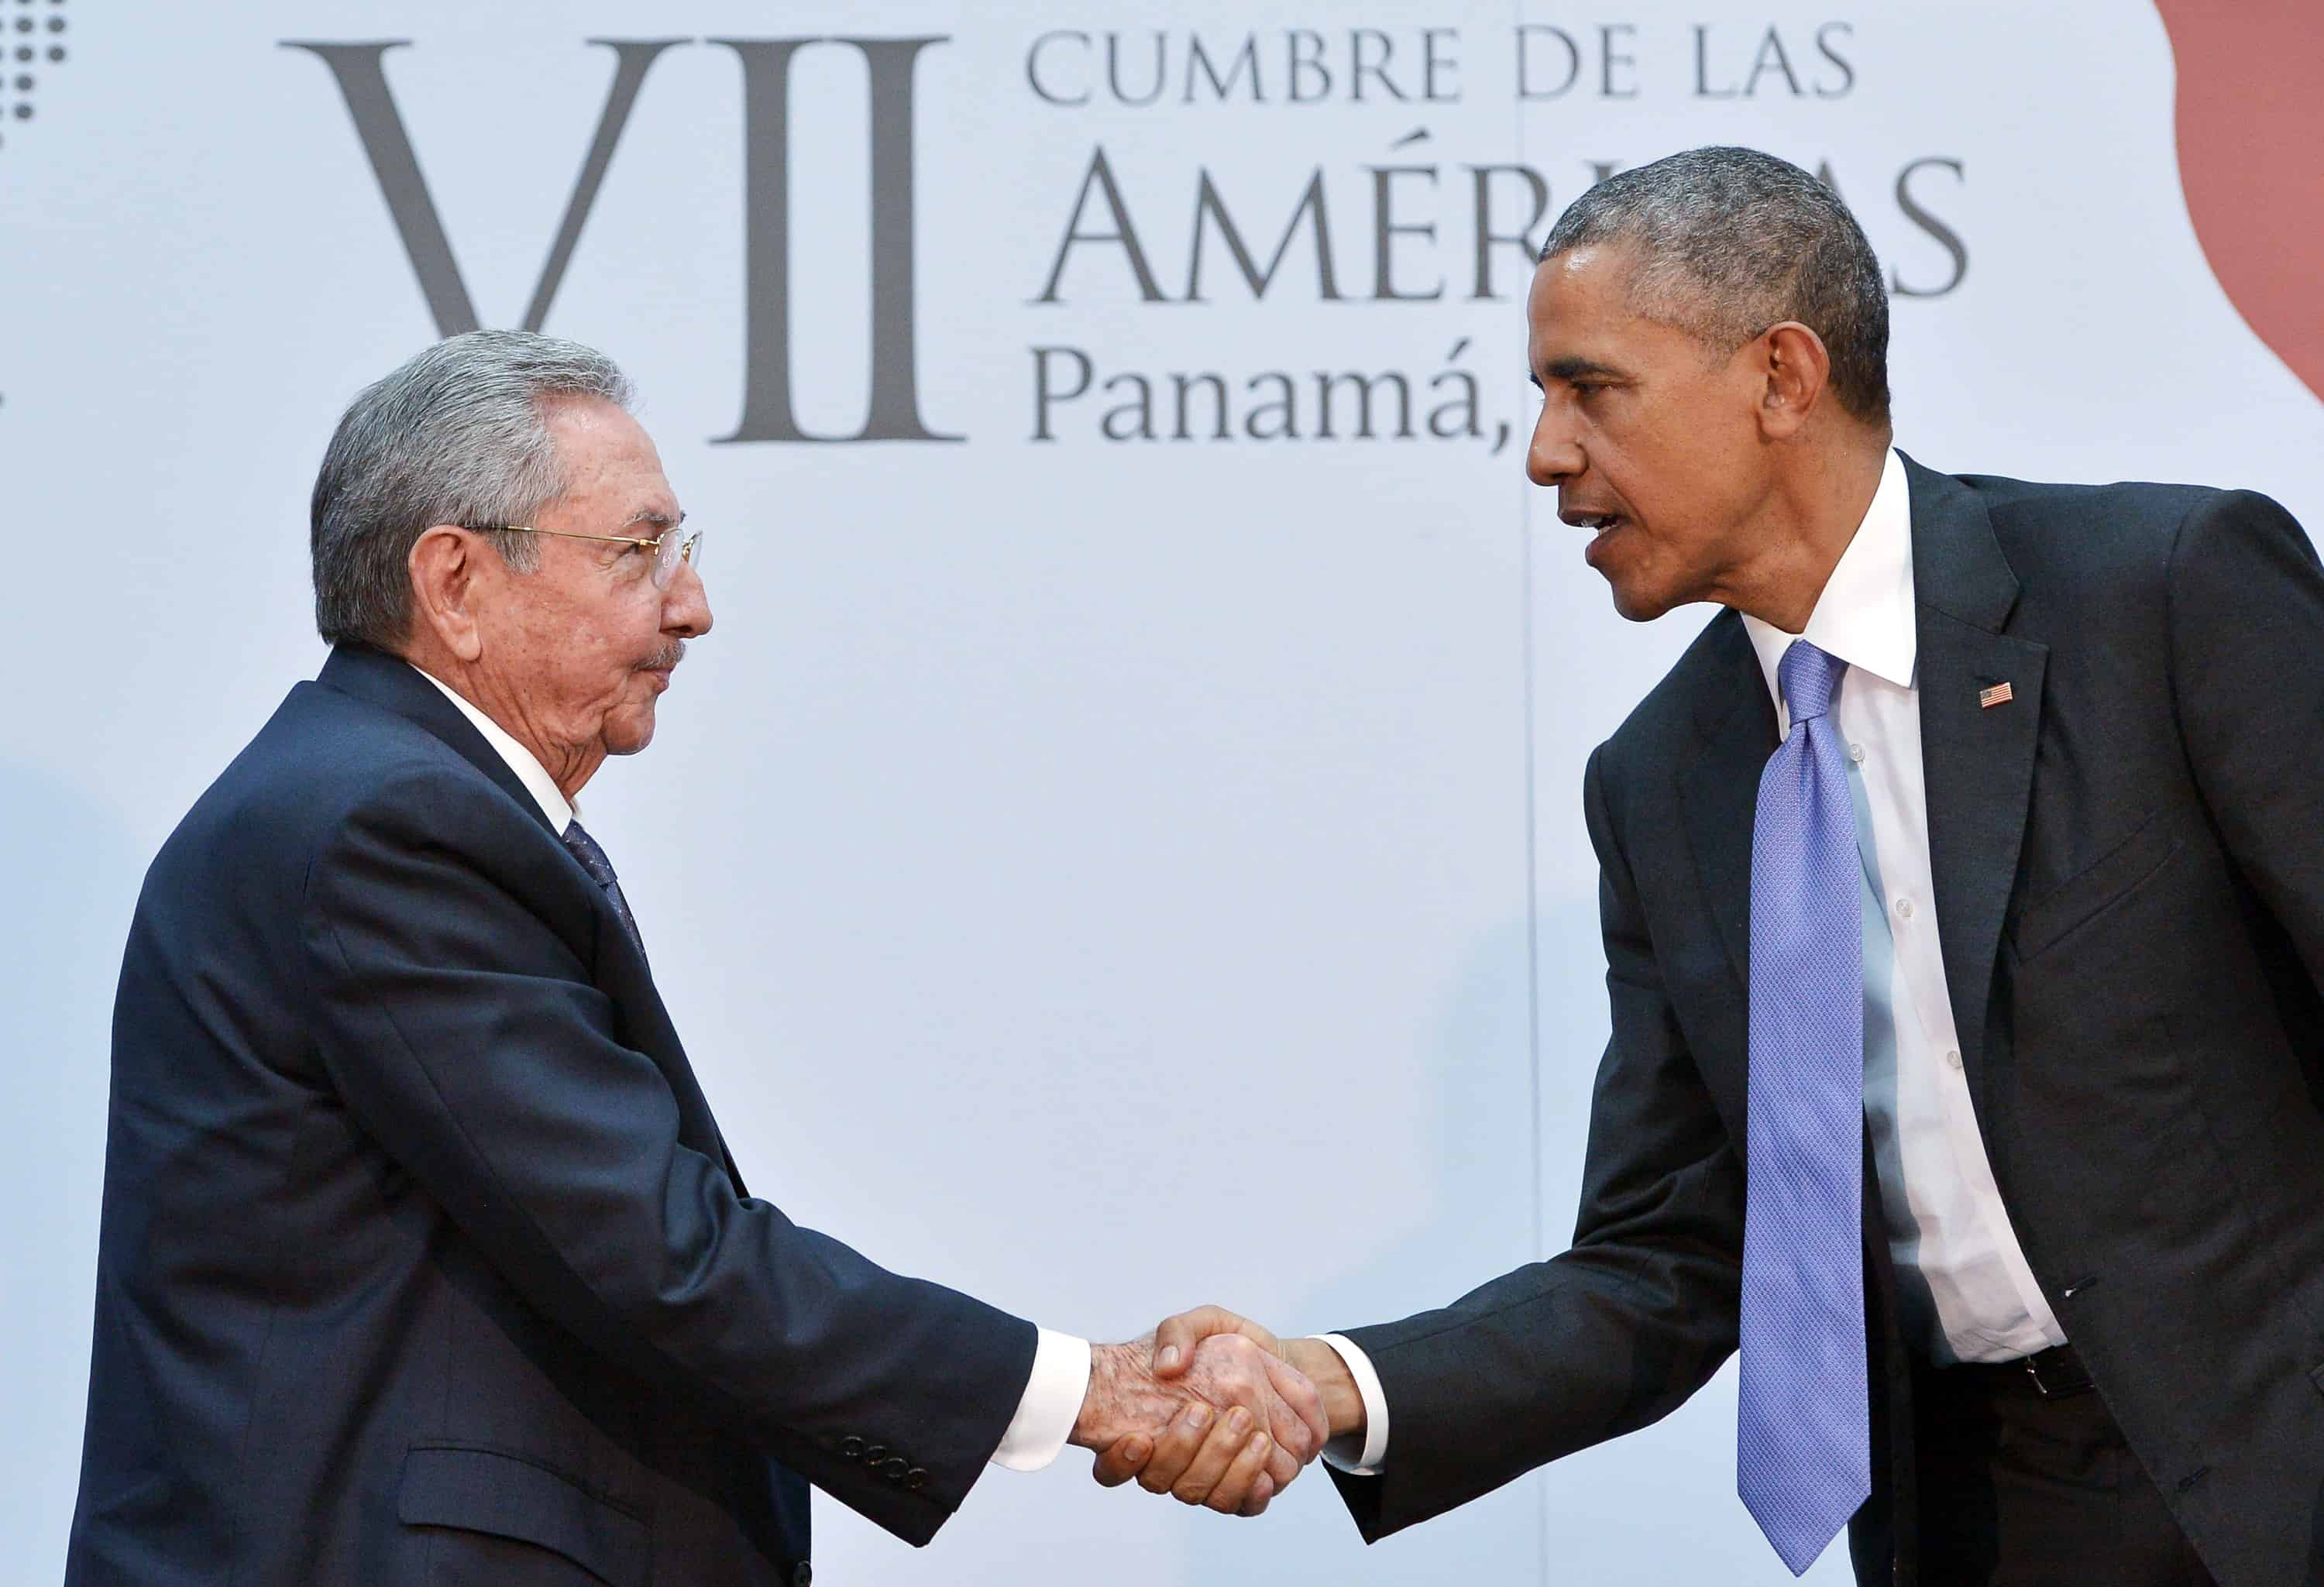 U.S. President Barack Obama shakes hands with Cuba's President Raul Castro during a meeting on the sidelines of the Summit of the Americas at the ATLAPA Convention center on April 11, 2015 in Panama City.